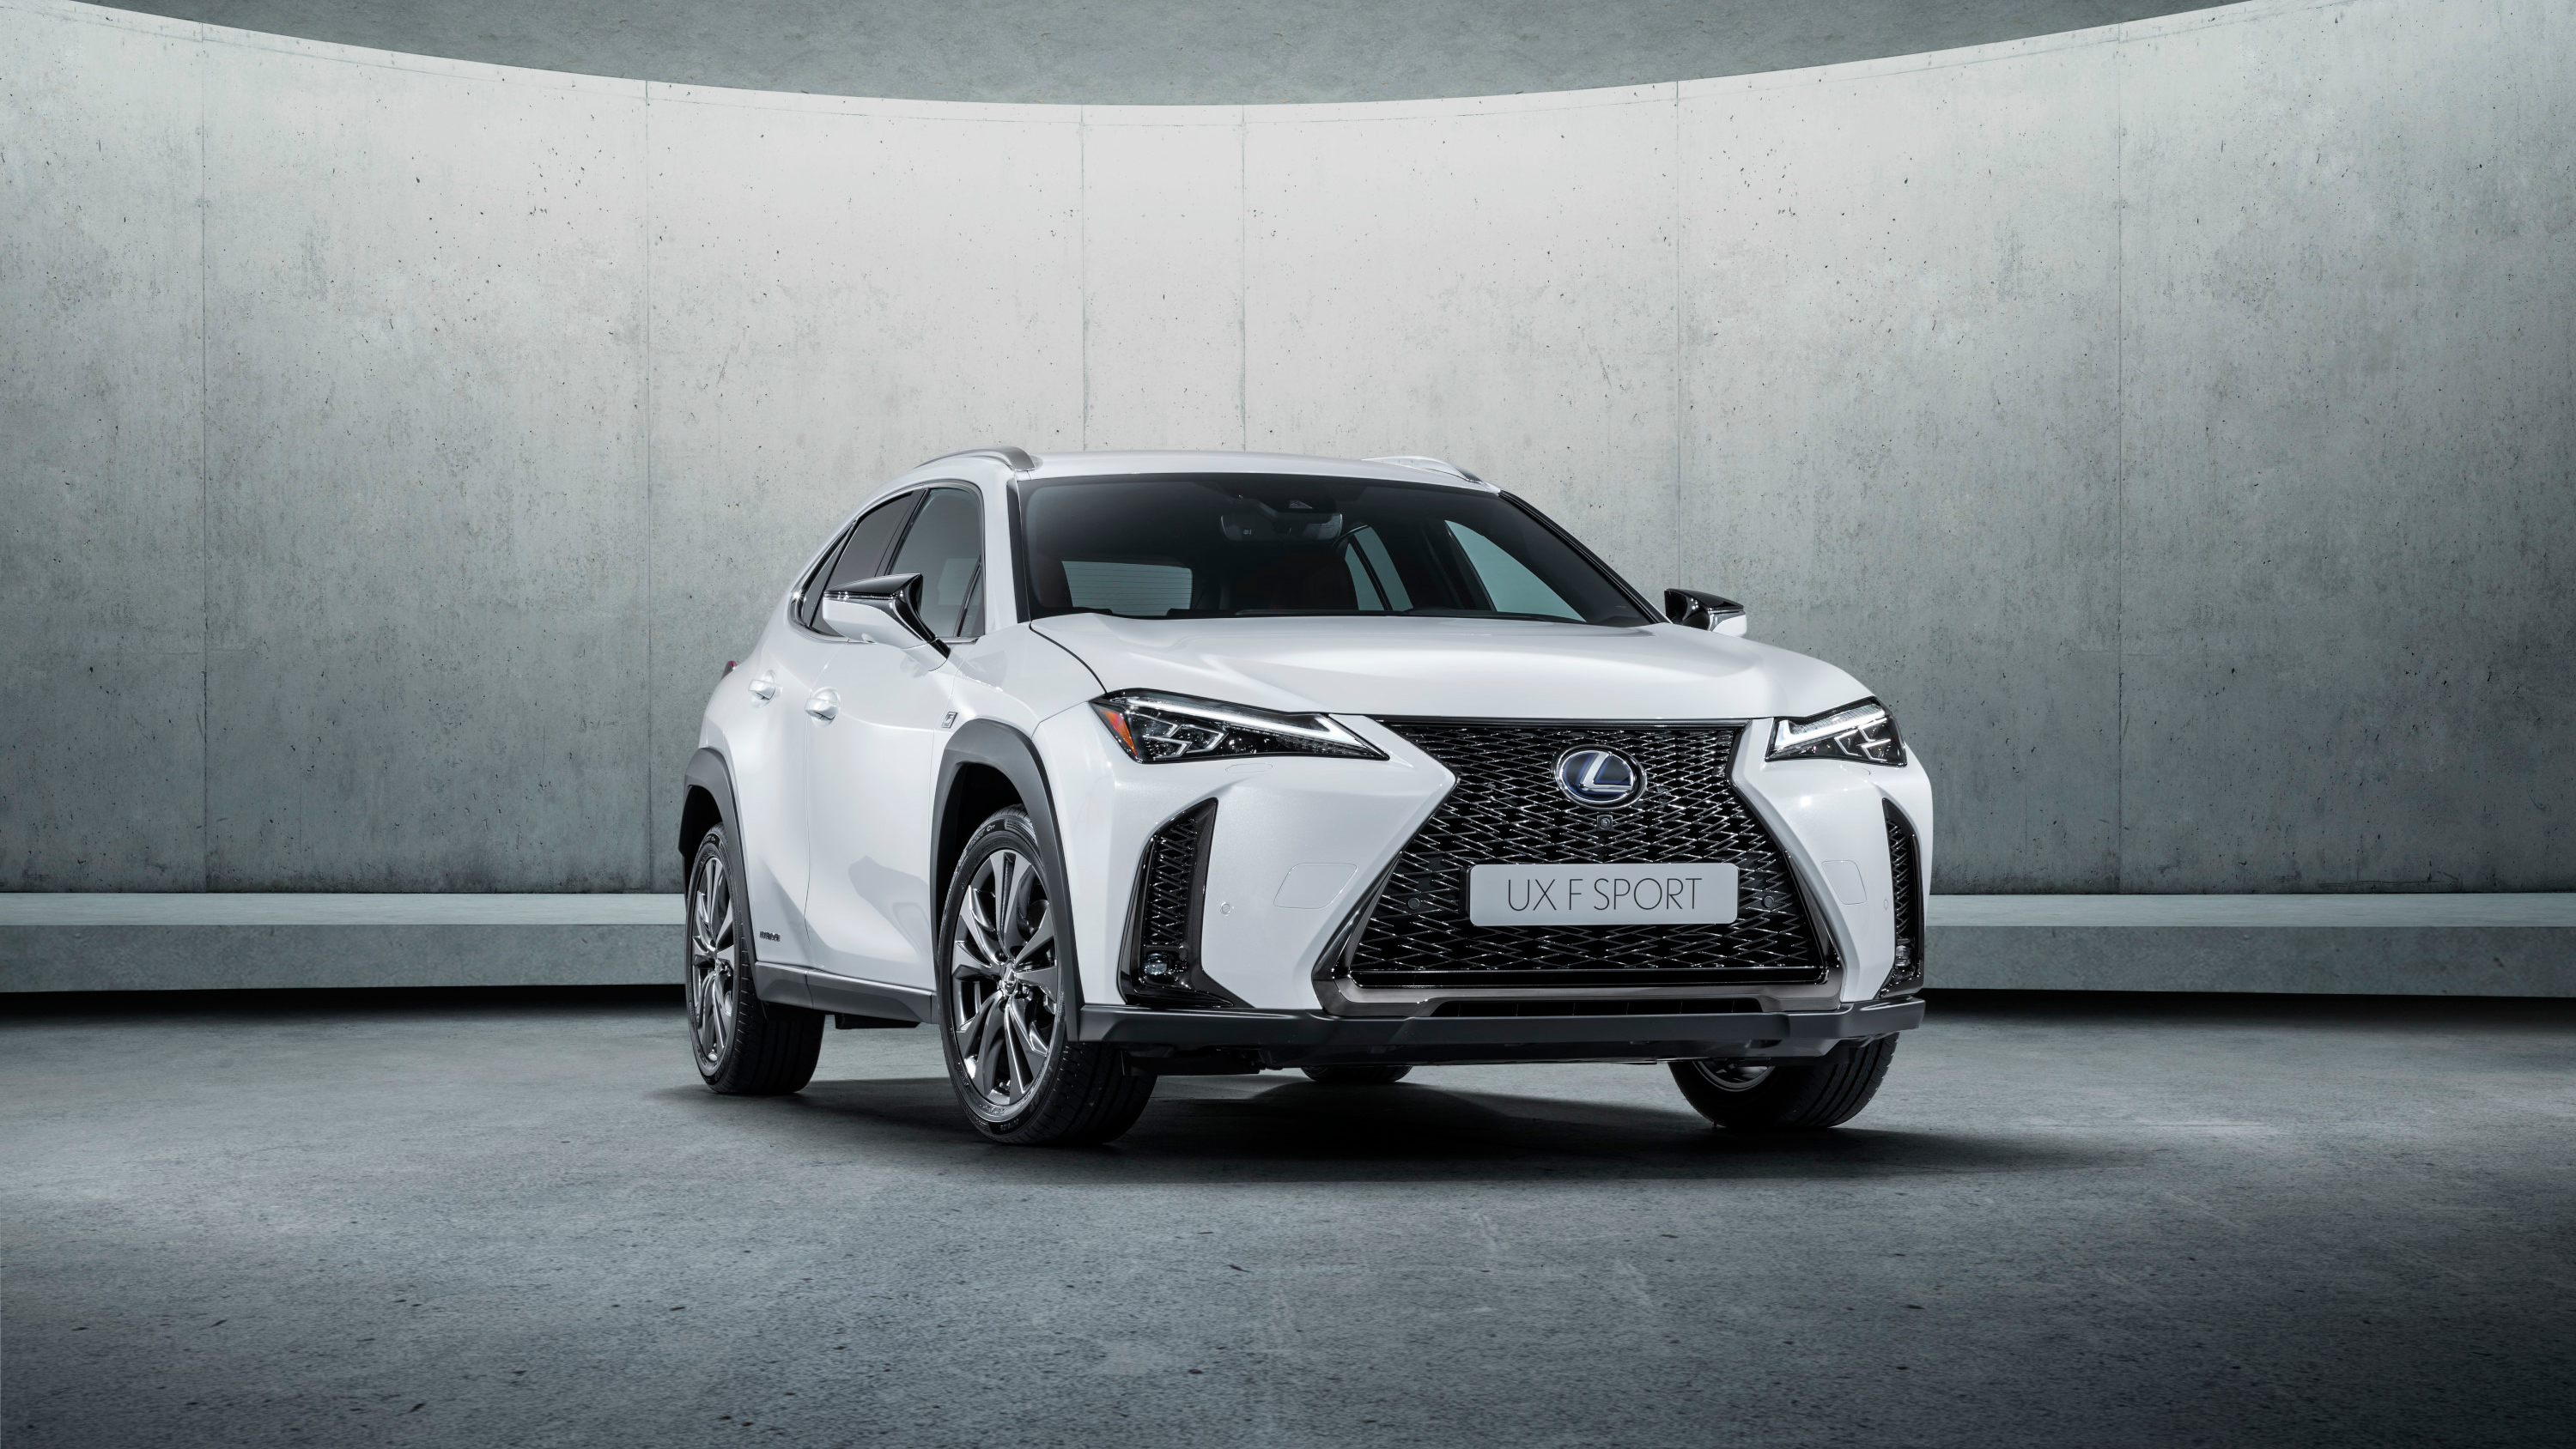 Car Wallpaper 8k 2018 Lexus Ux 250h F Sport 3 Wallpaper Hd Car Wallpapers